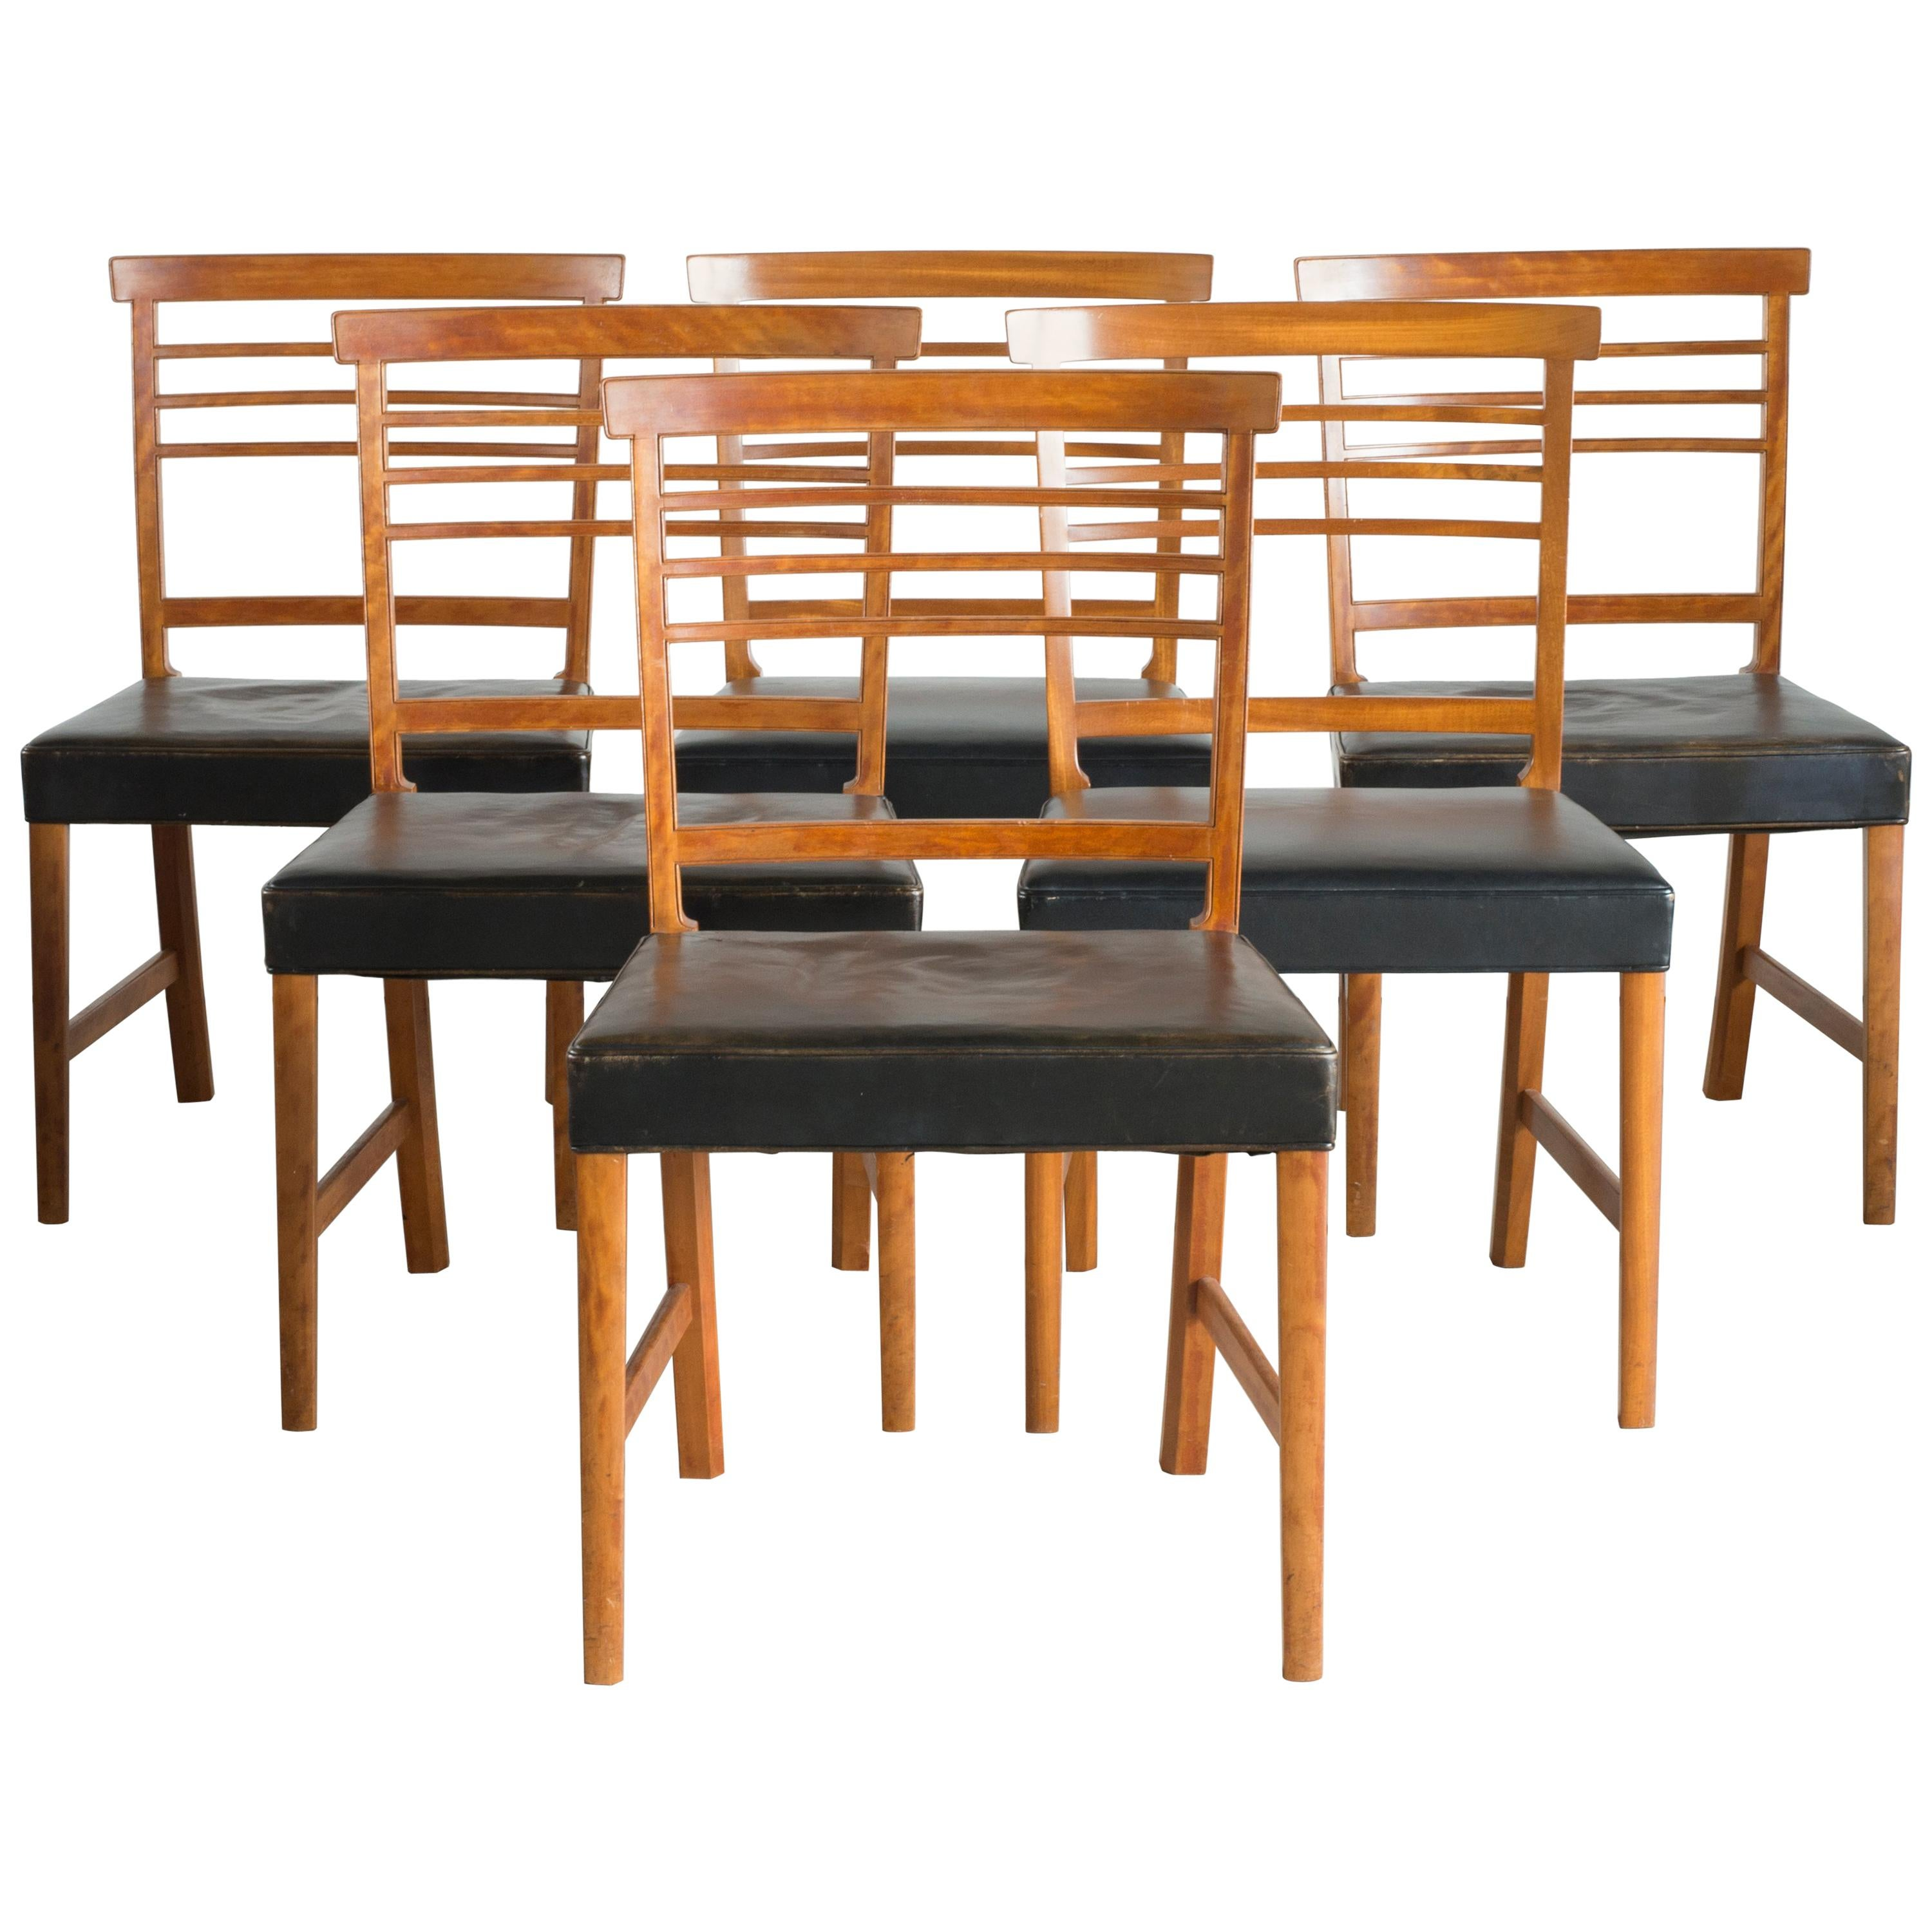 Ole Wanscher Set of Six Chairs for a. J. Iversen